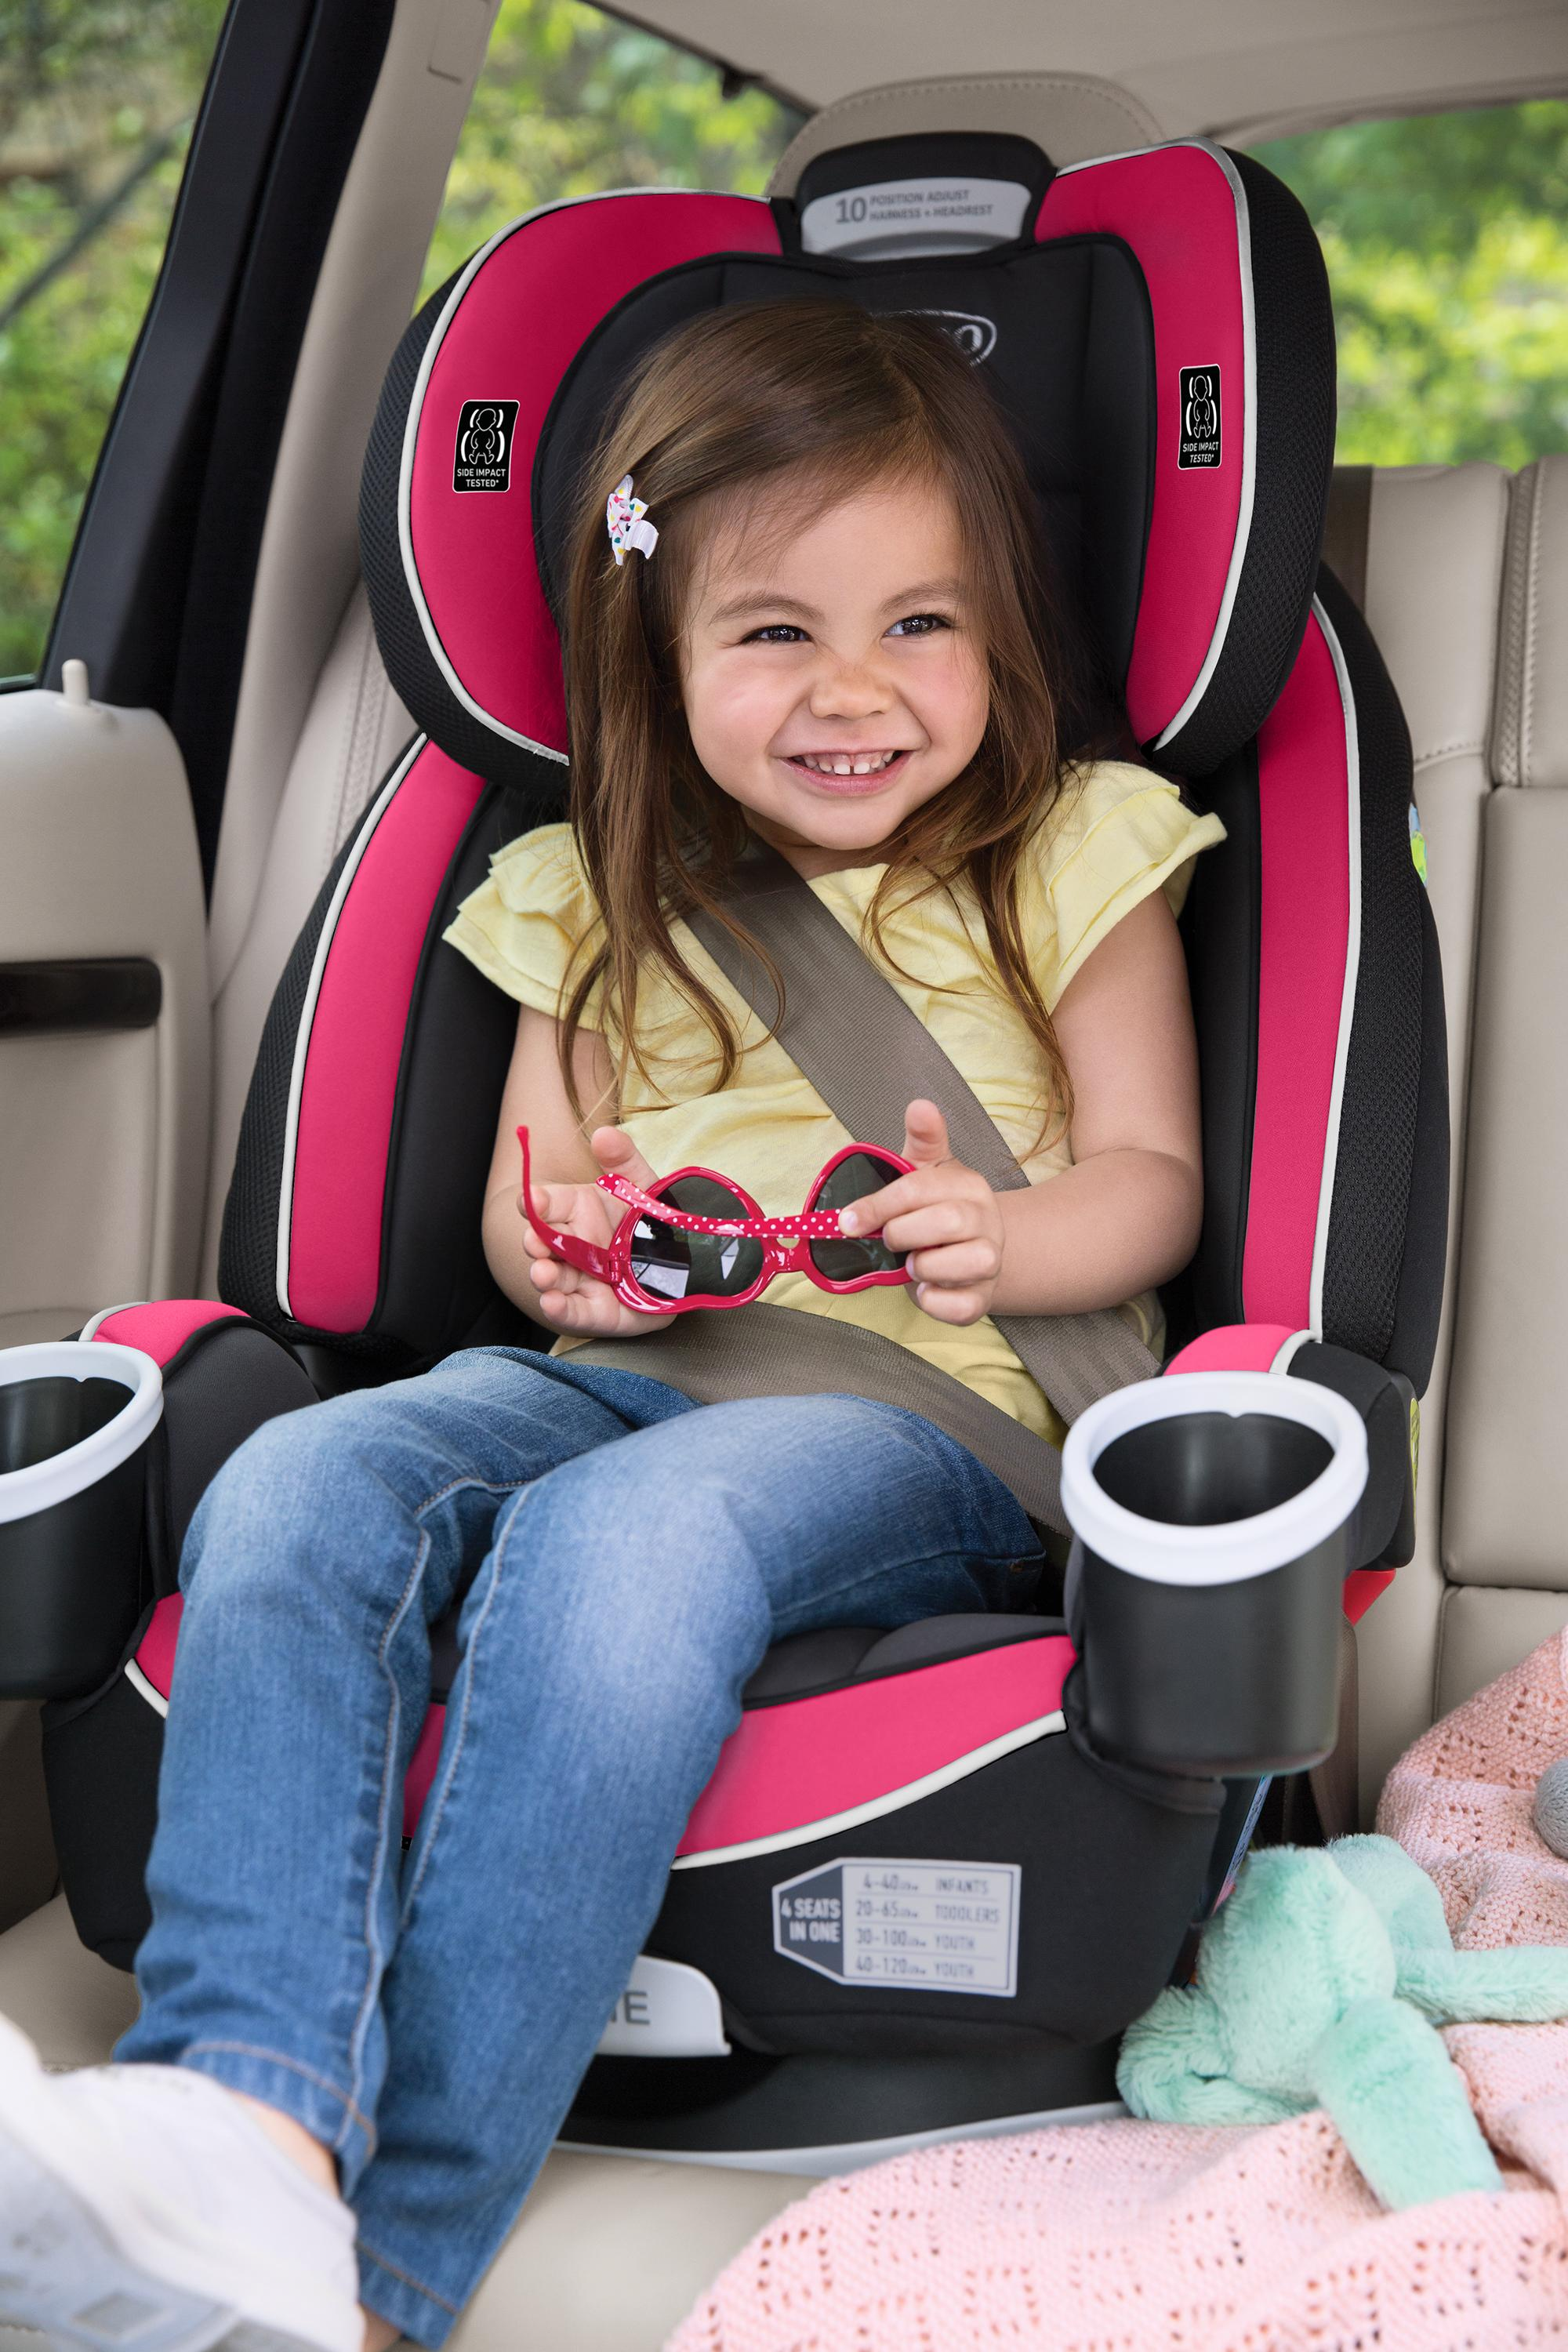 Graco 4ever All-in-One Rear-facing Baby Car Seat